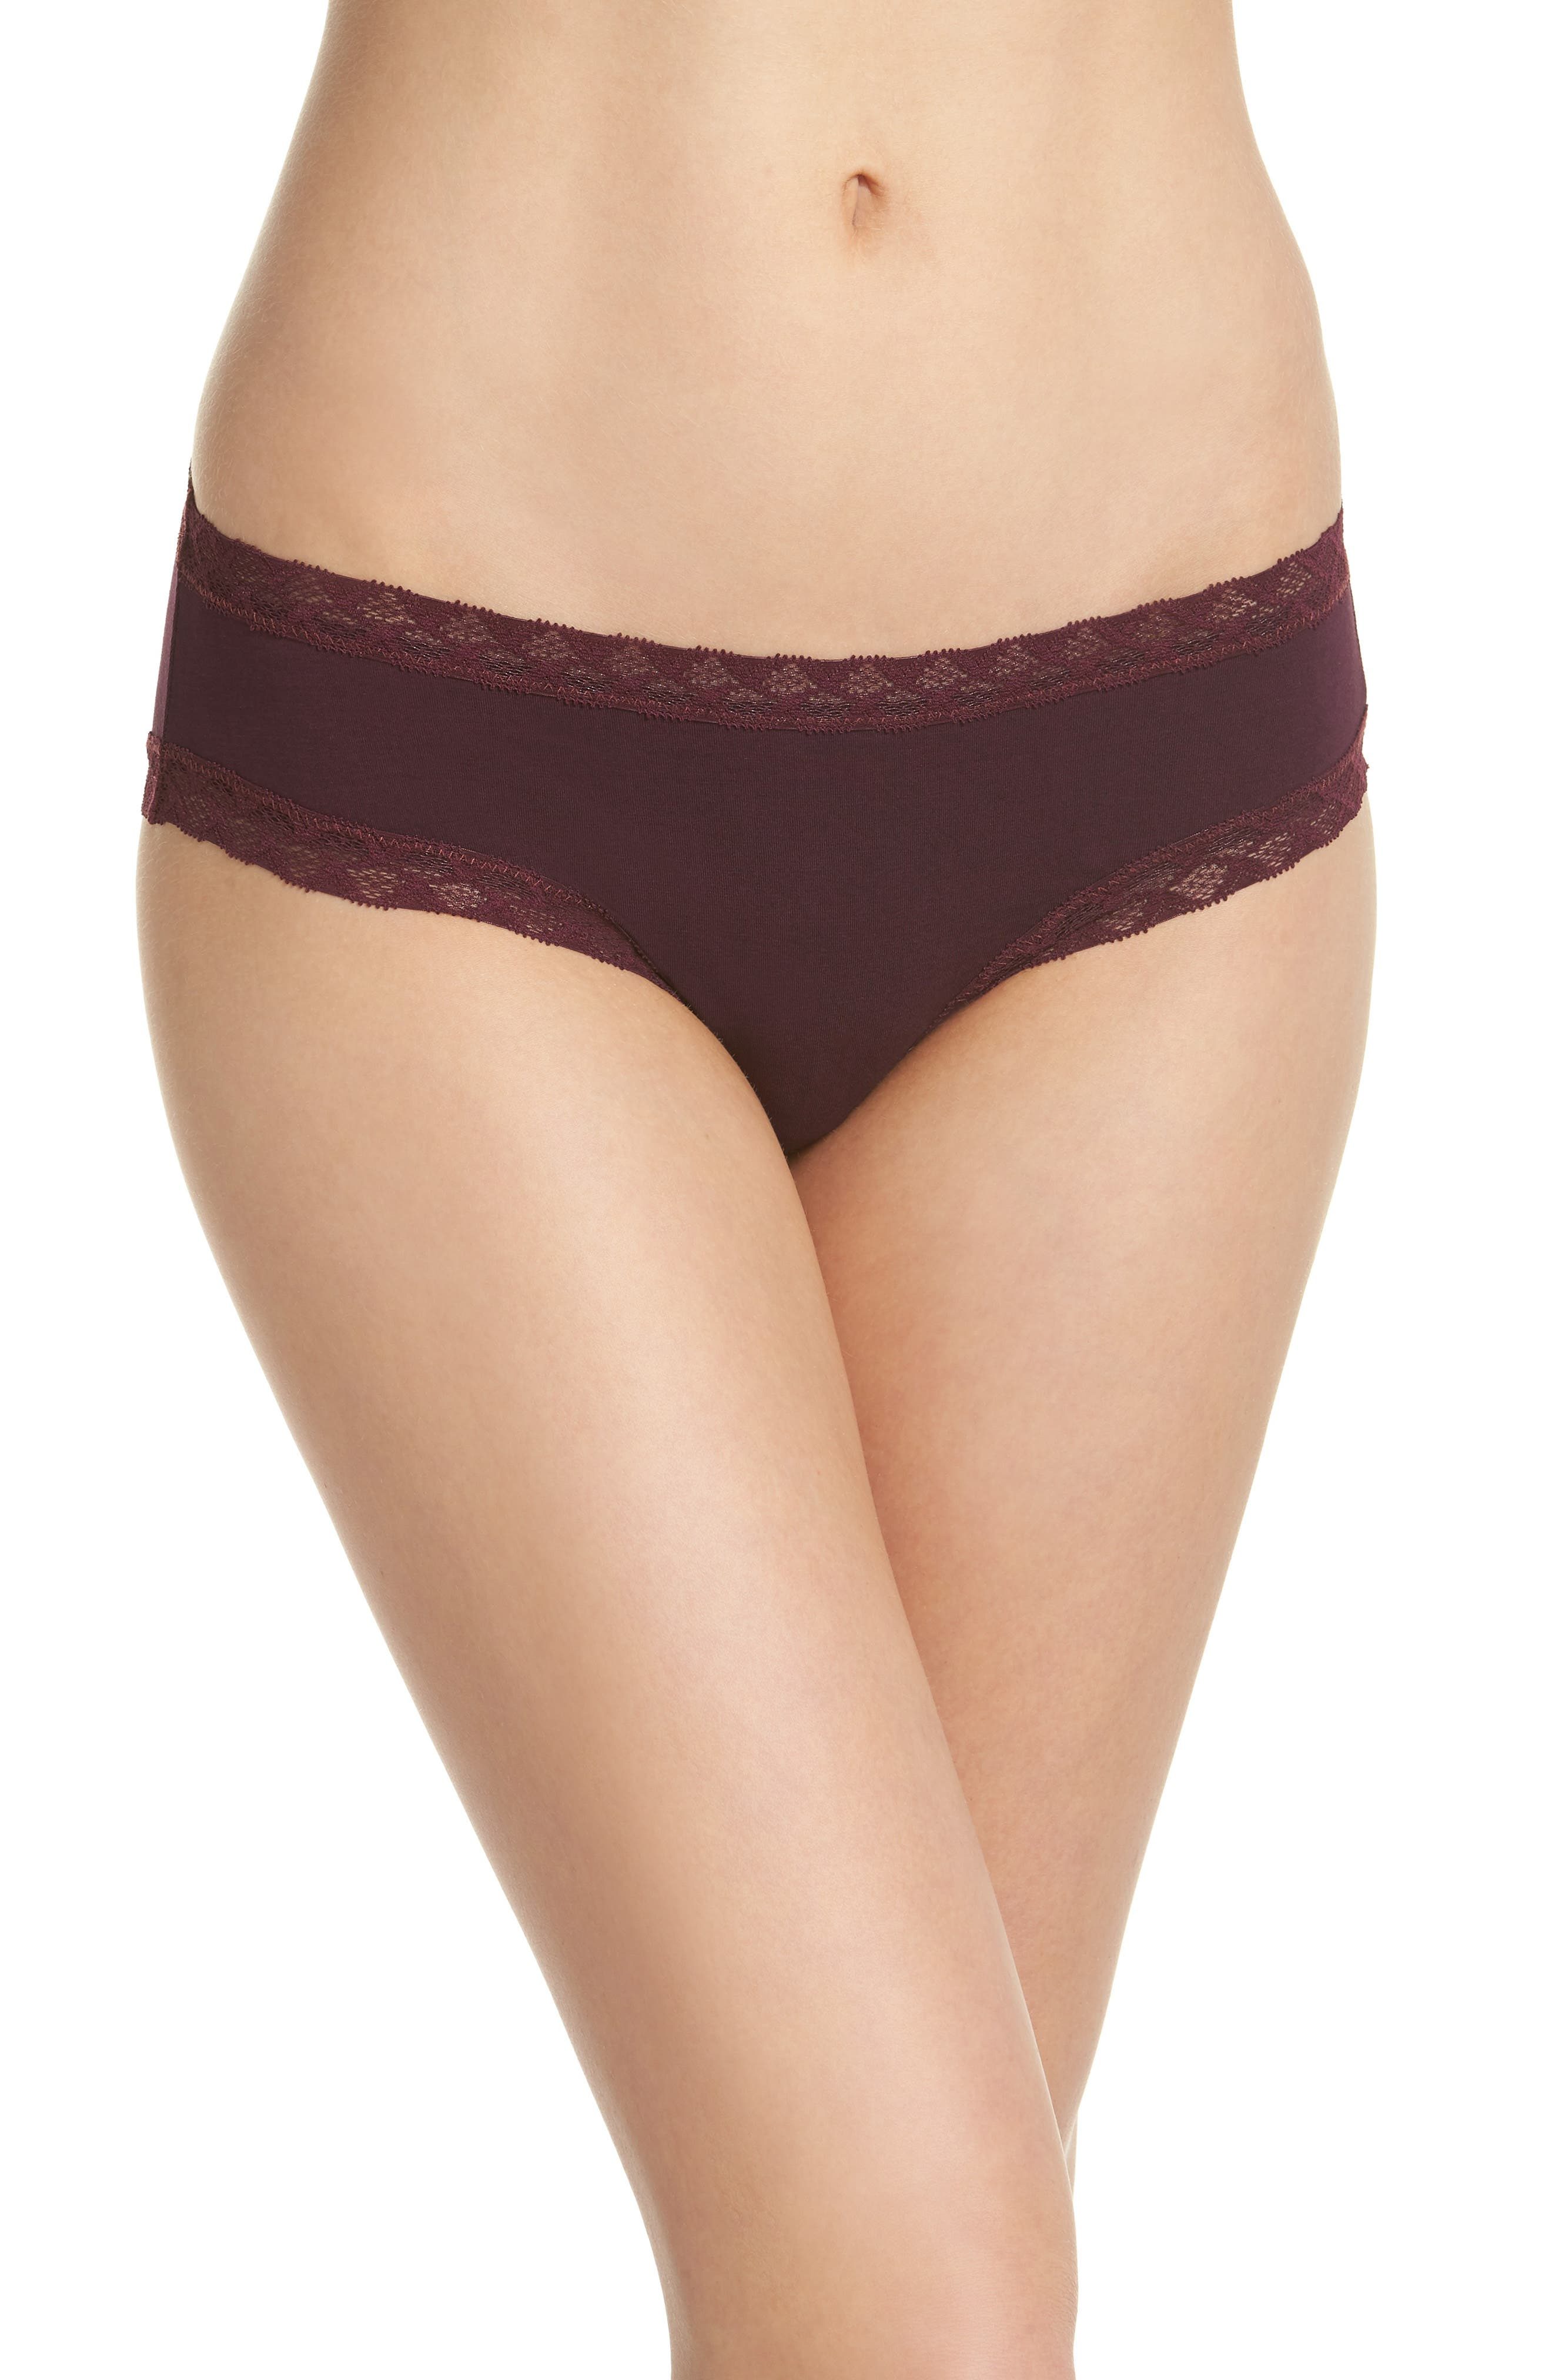 Bliss Cotton Girl Briefs,                             Main thumbnail 1, color,                             Potent Purple